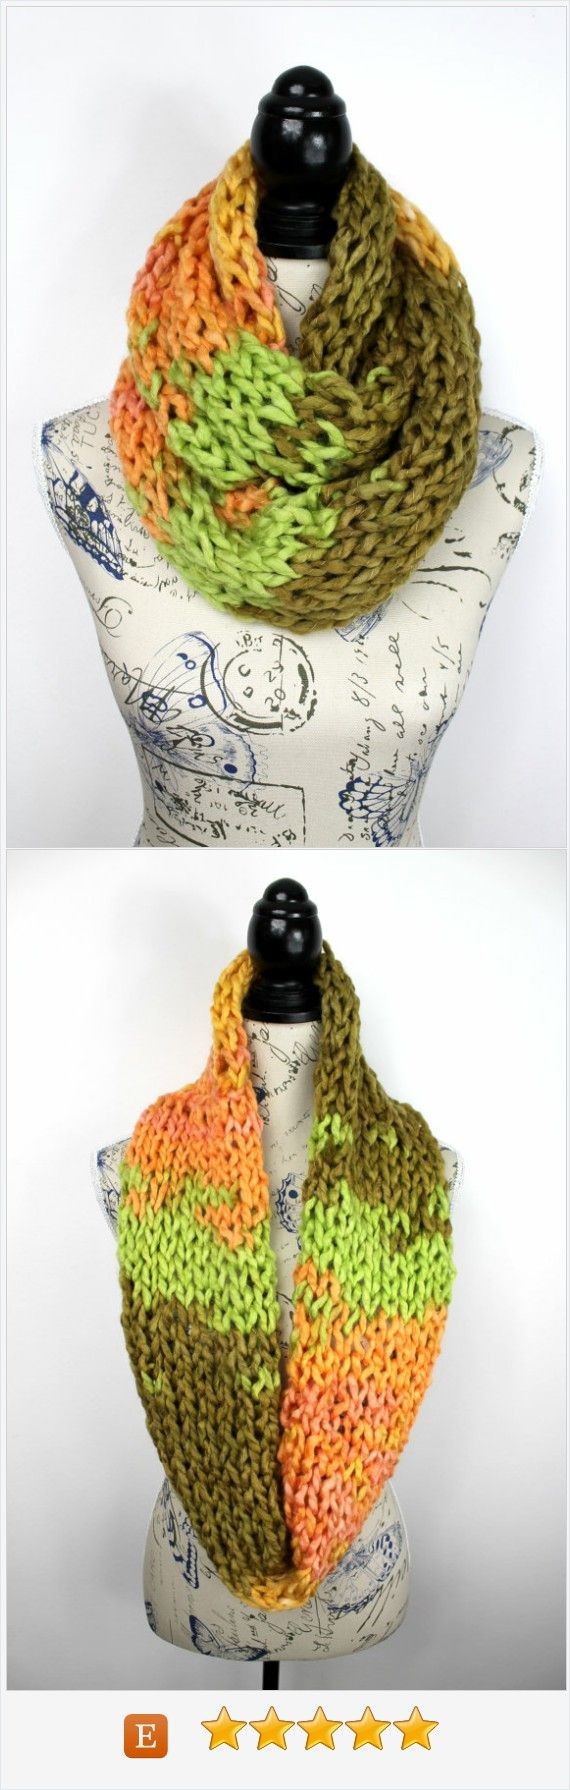 Super Chunky Scarf - Bulky Knit Scarf - Knit Snood Scarf - Eternity Scarf - winter knit Infinity - Knit Eternity Scarf - Multicolor Snood